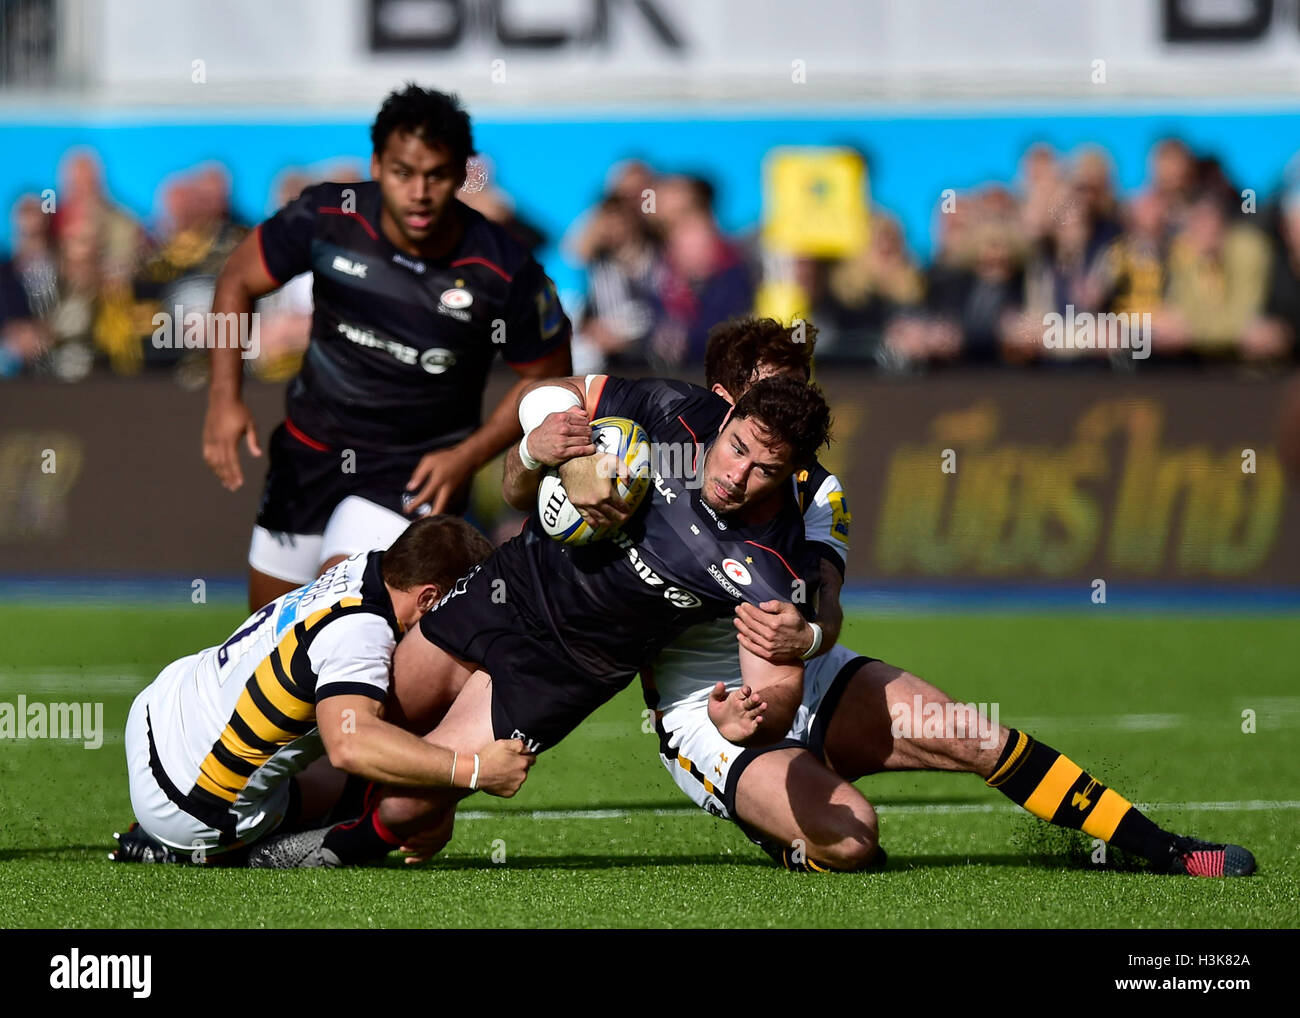 LONDON, ENGLAND - 9 October, 2016: Brad Barritt of Saracens is tackled during Aviva Premiership match between Saracens - Stock Image